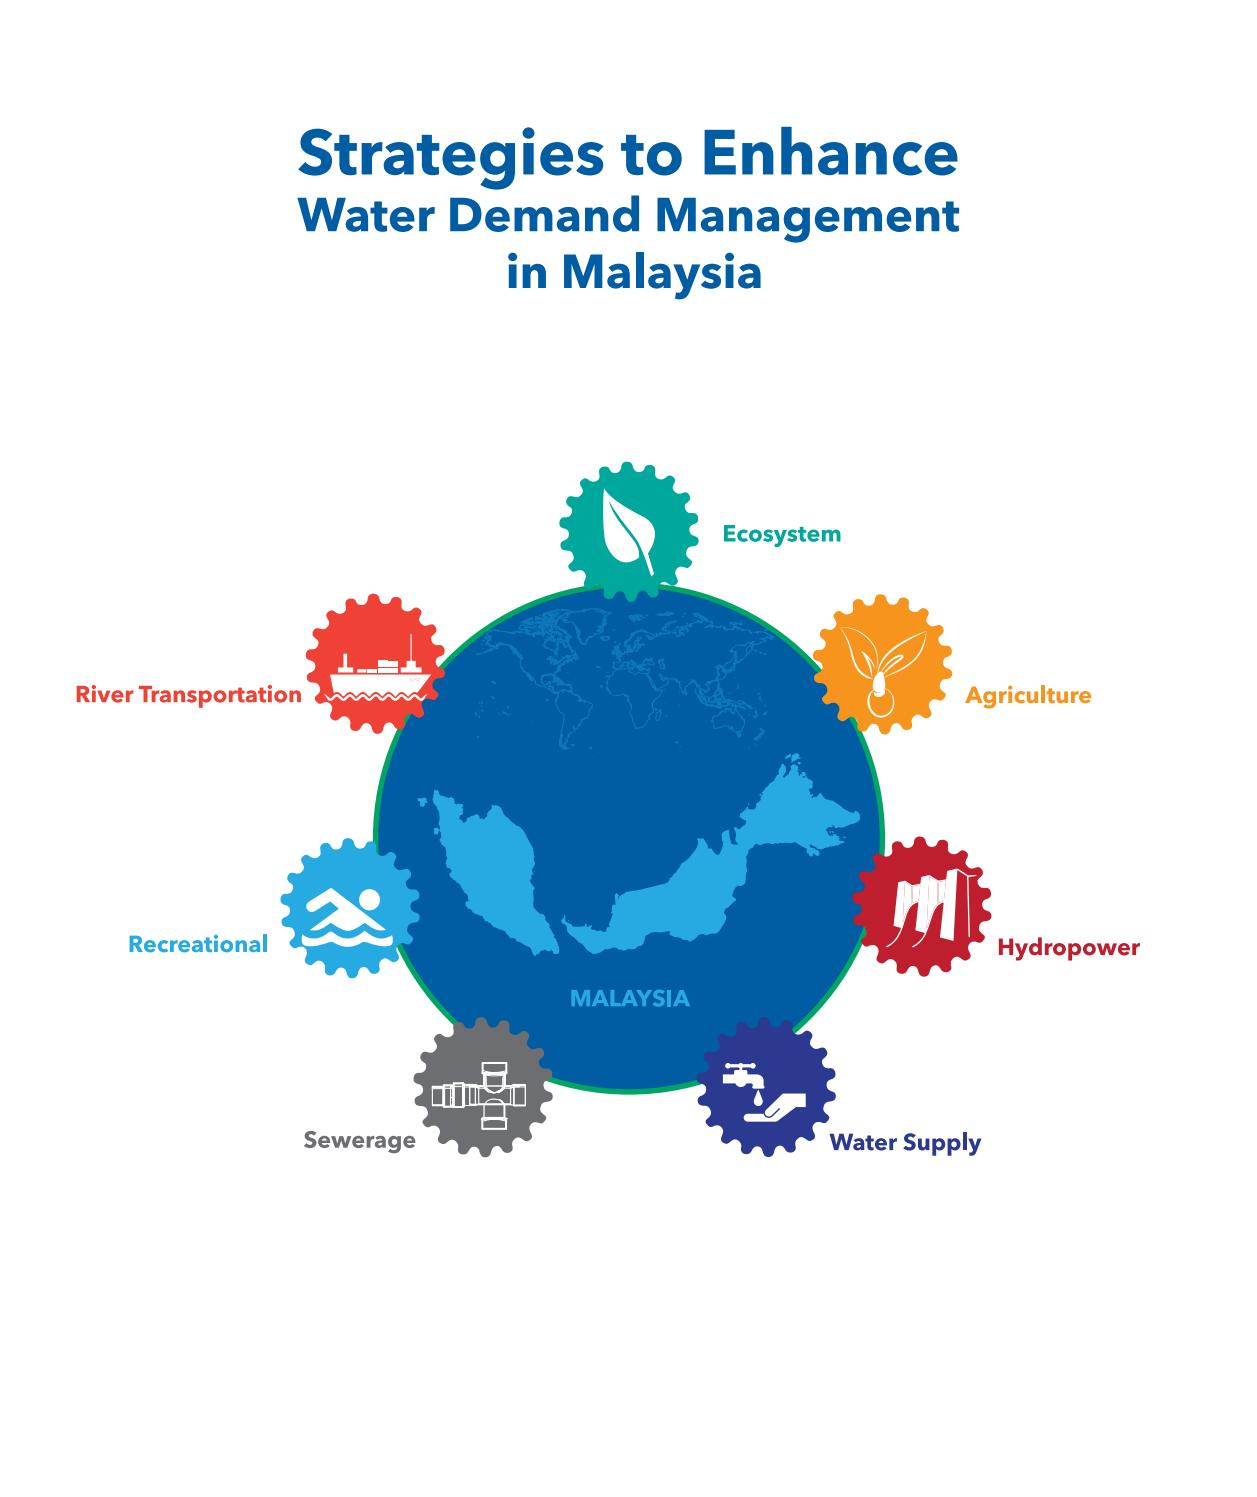 Strategies to Enhance Water Demand Management in Malaysia by